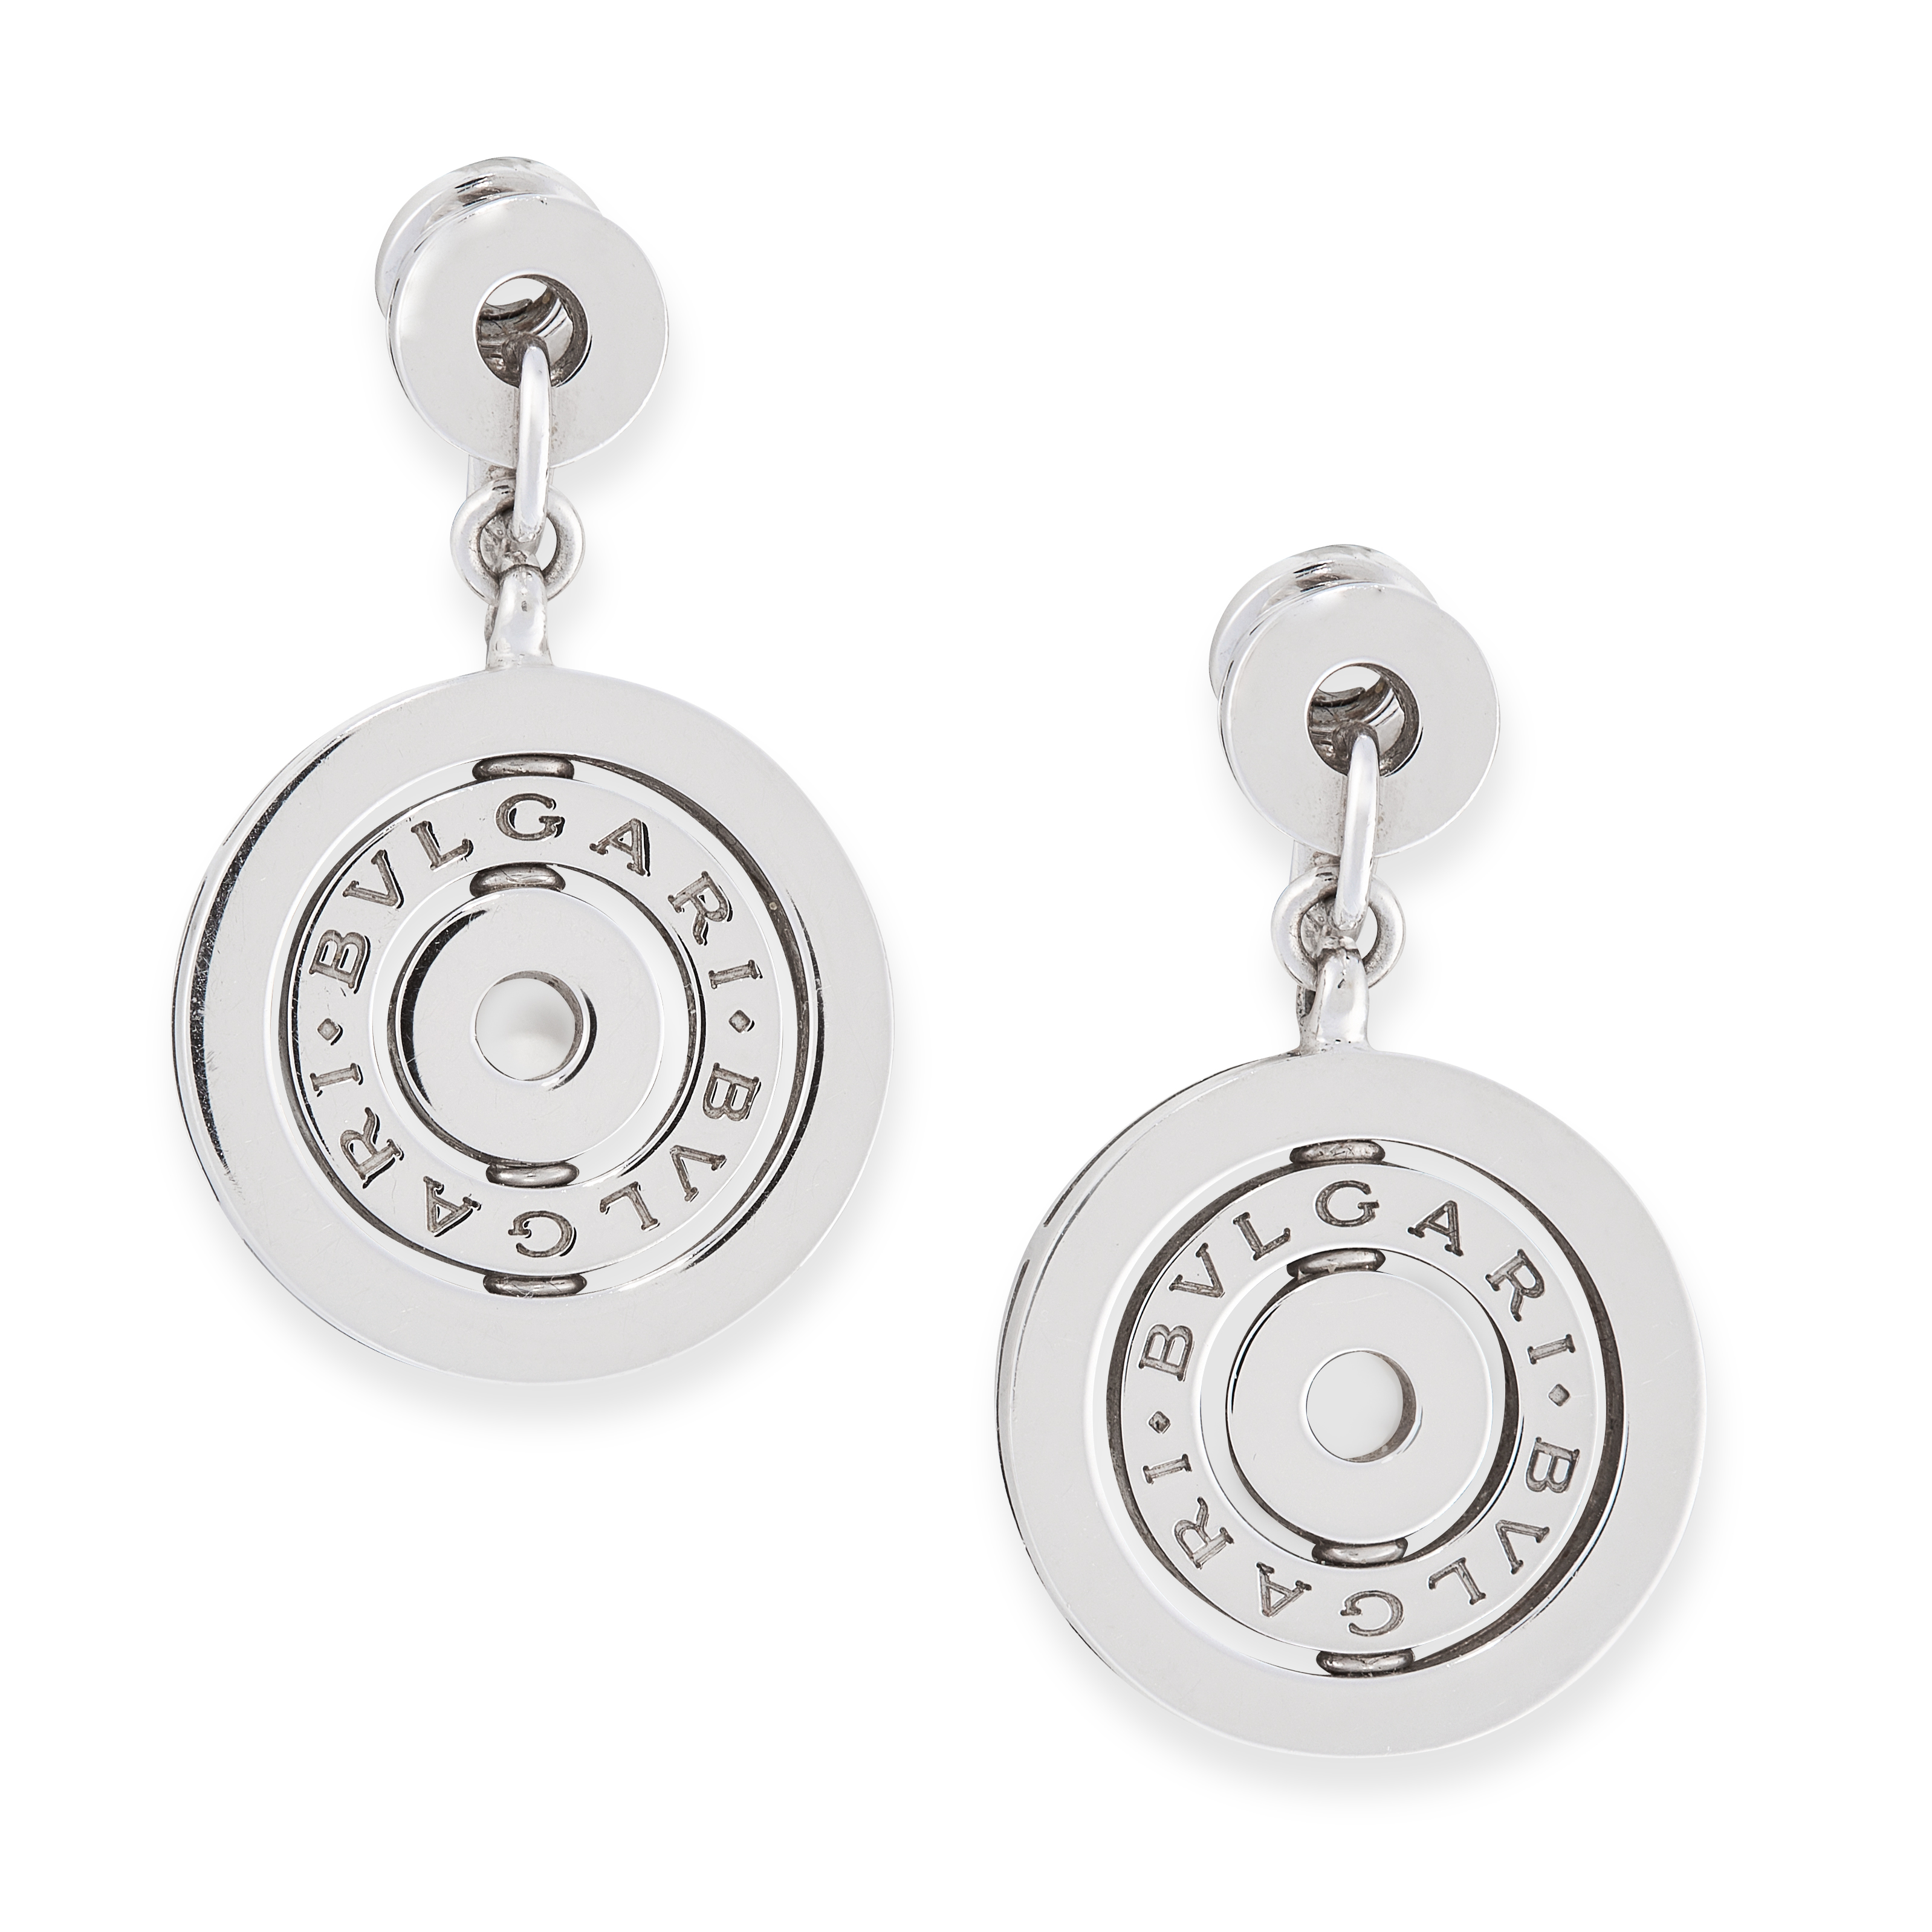 A PAIR OF ASTRAL CLIP EARRINGS, BULGARI in 18ct yellow gold, formed of concentric circles stamped